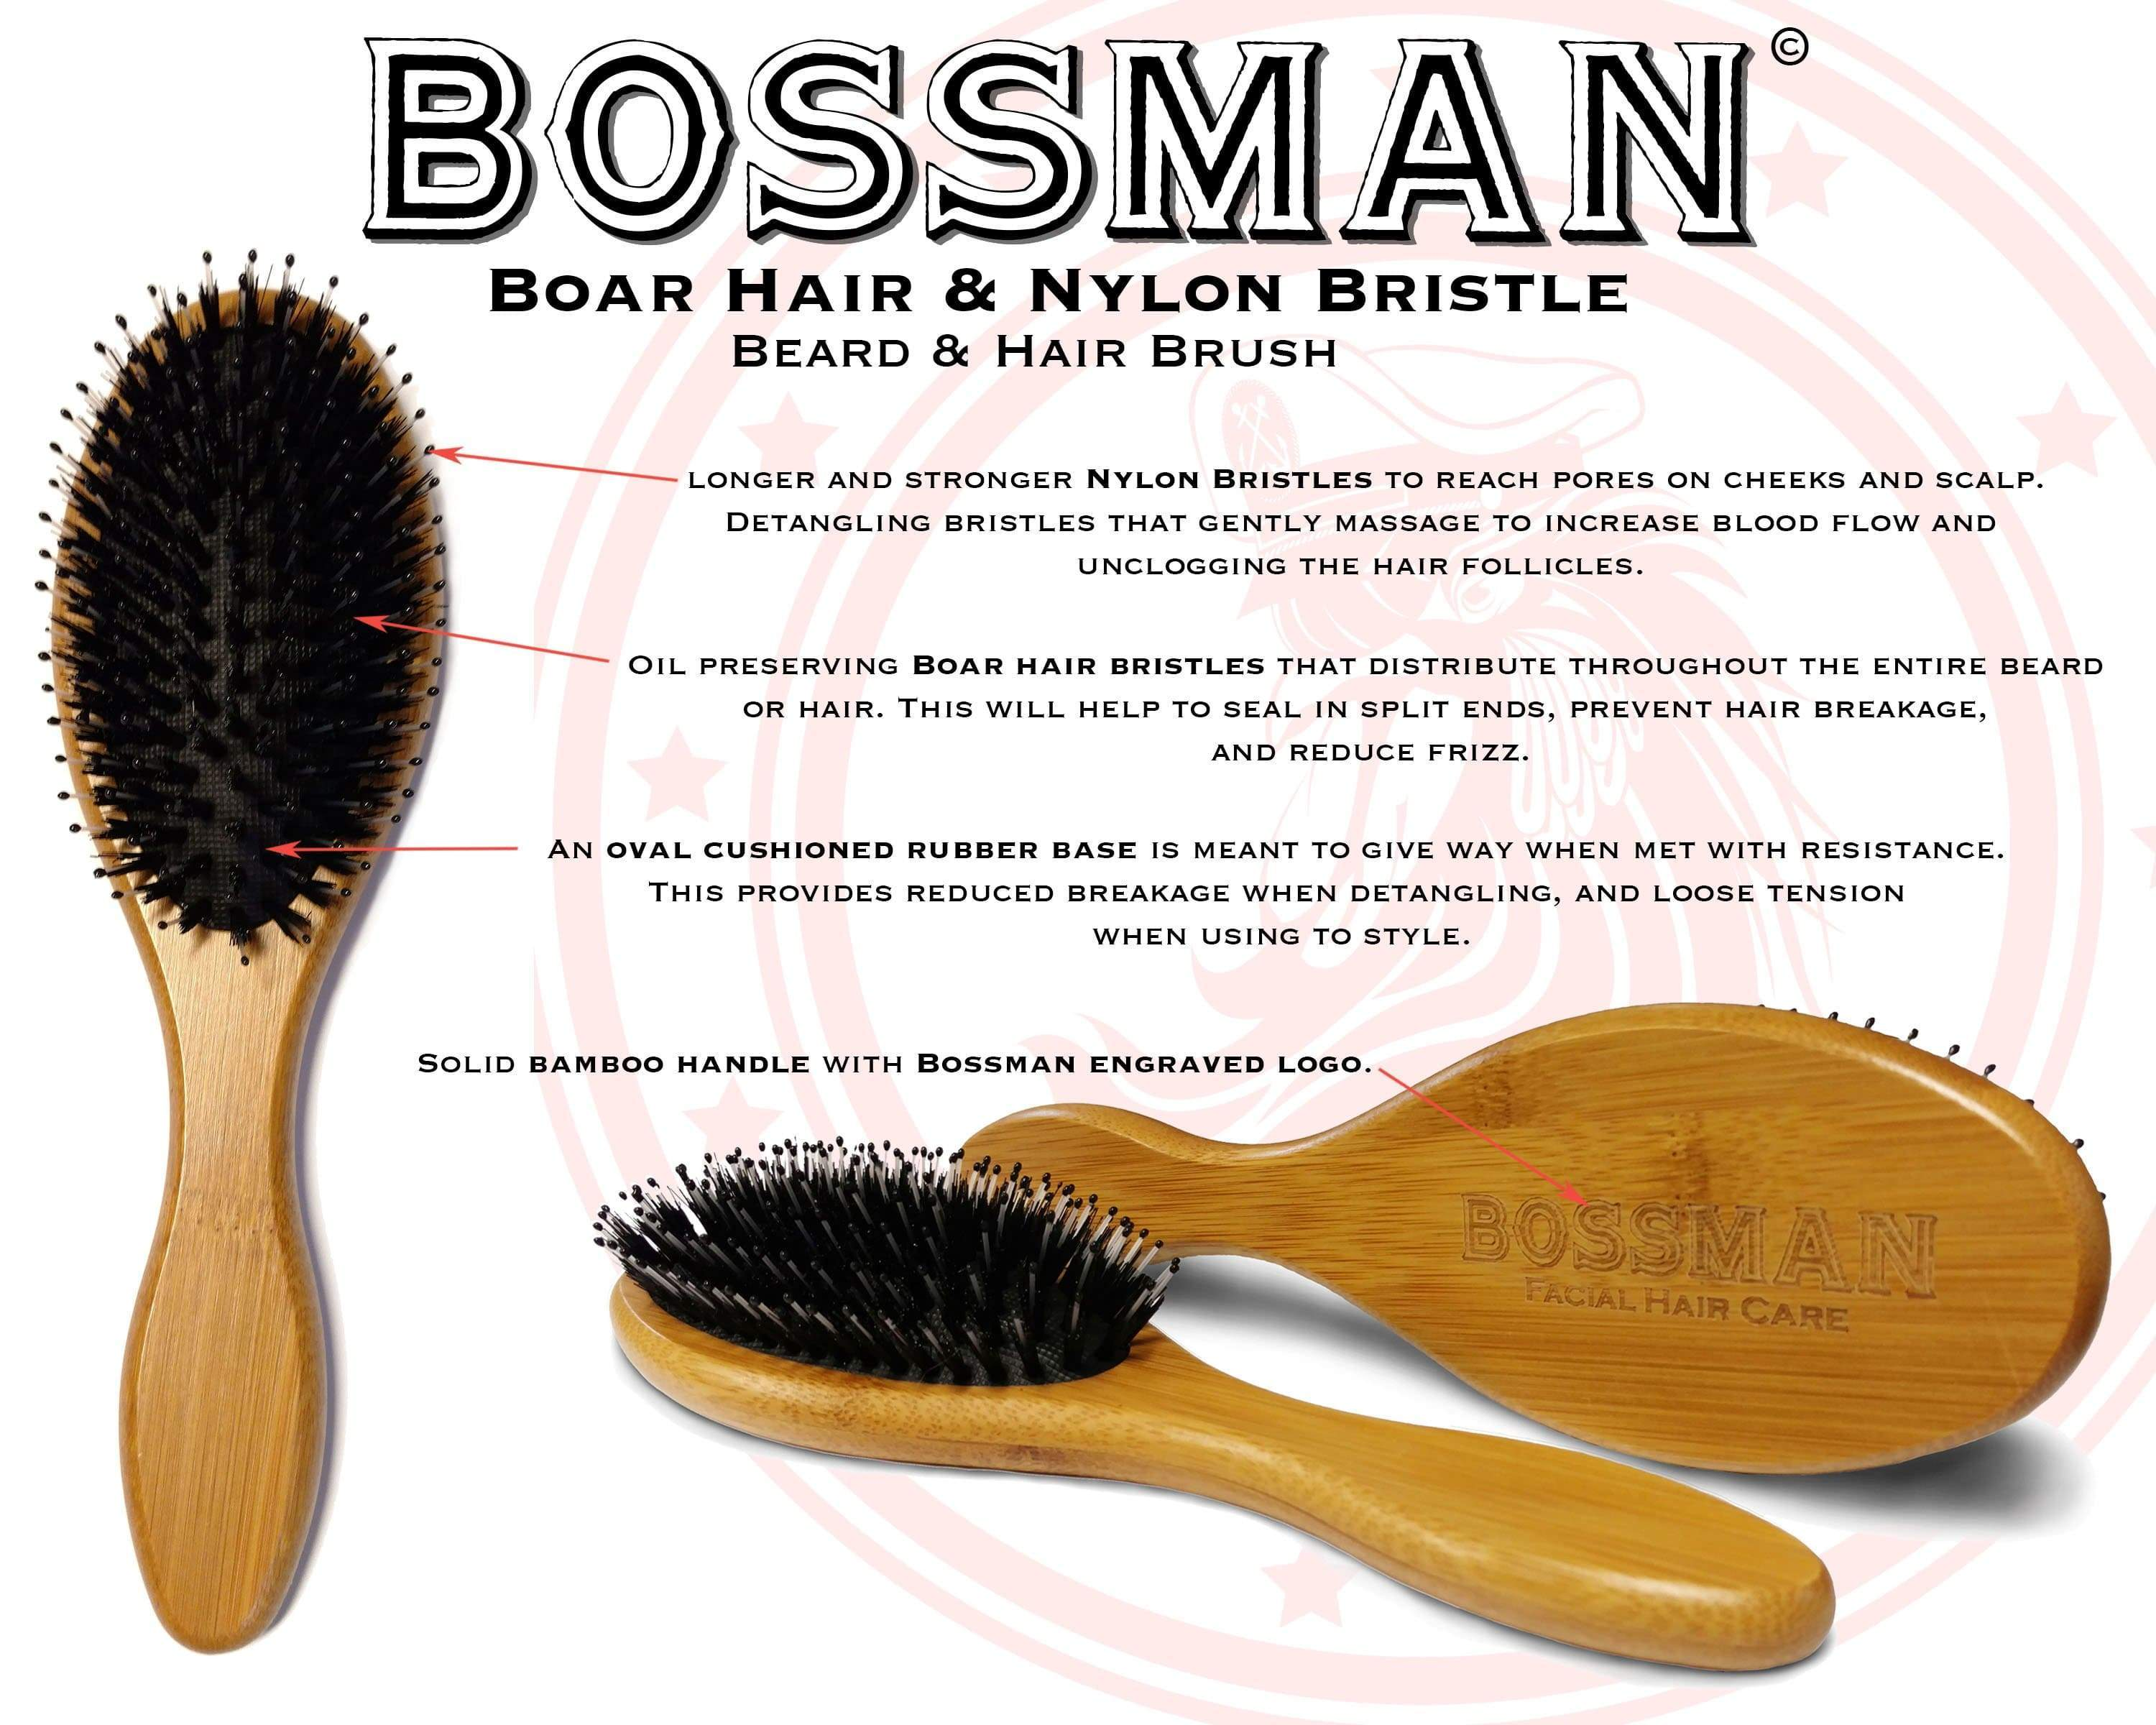 Bossman Boar Hair & Nylon Bristles Bamboo Handle Beard Brush